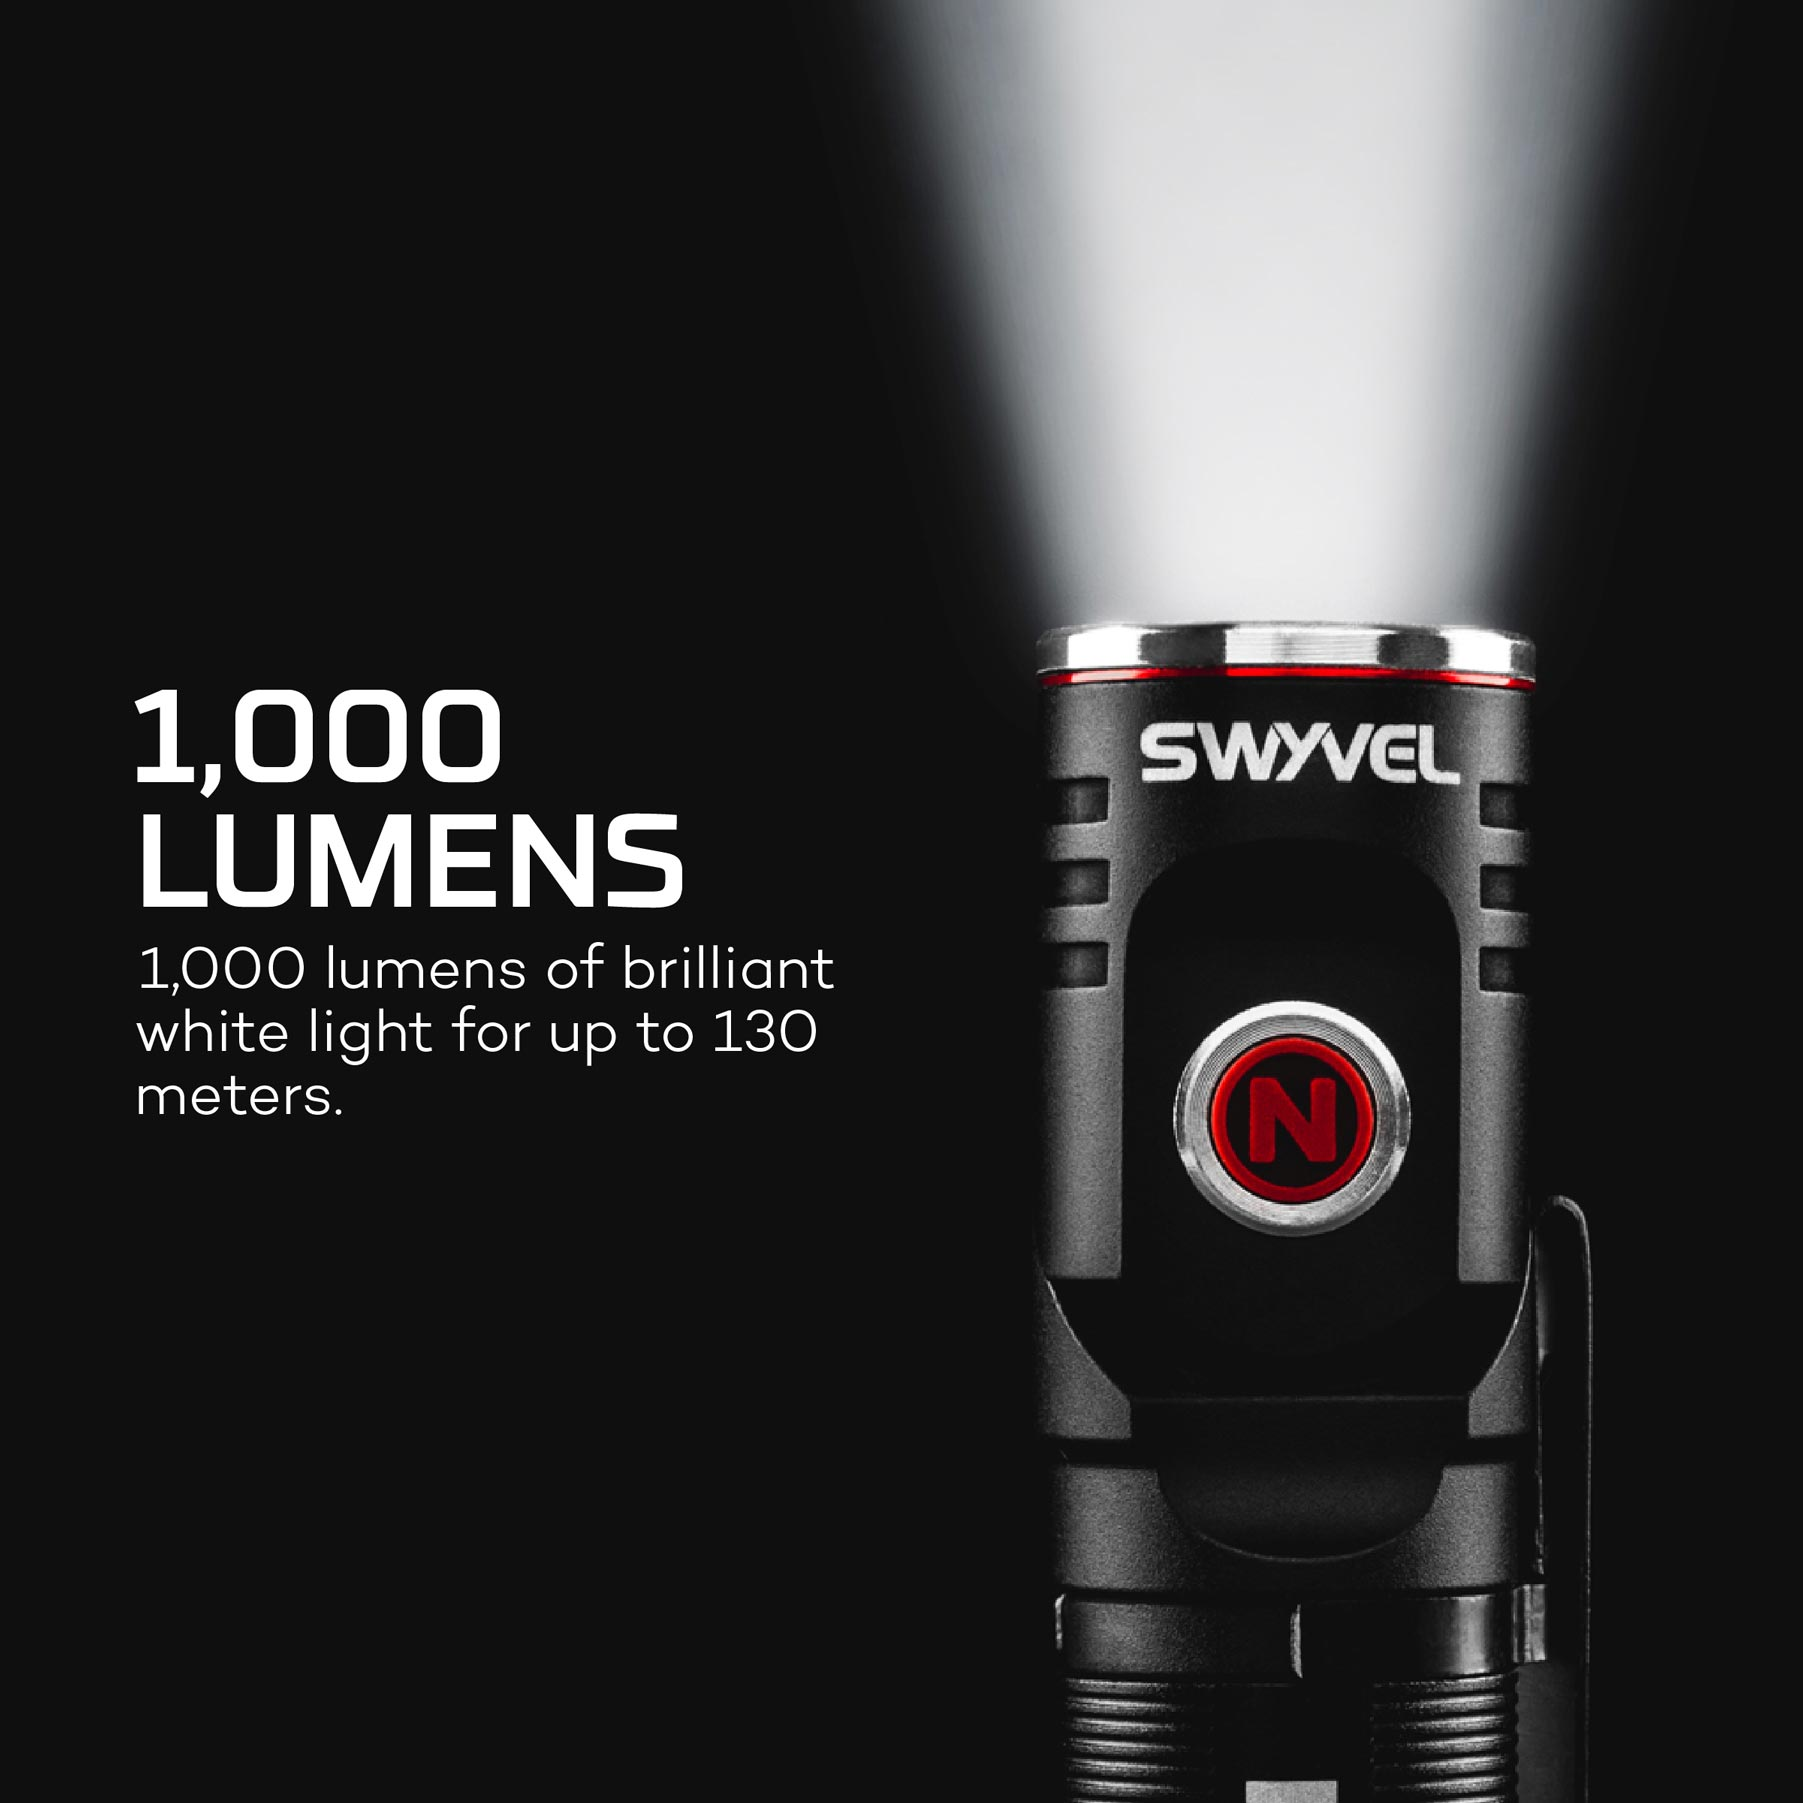 SWYVEL - Compact 1,000 Lumen Rechargeable EDC Flashlight with a 90º Rotating Swivel Head